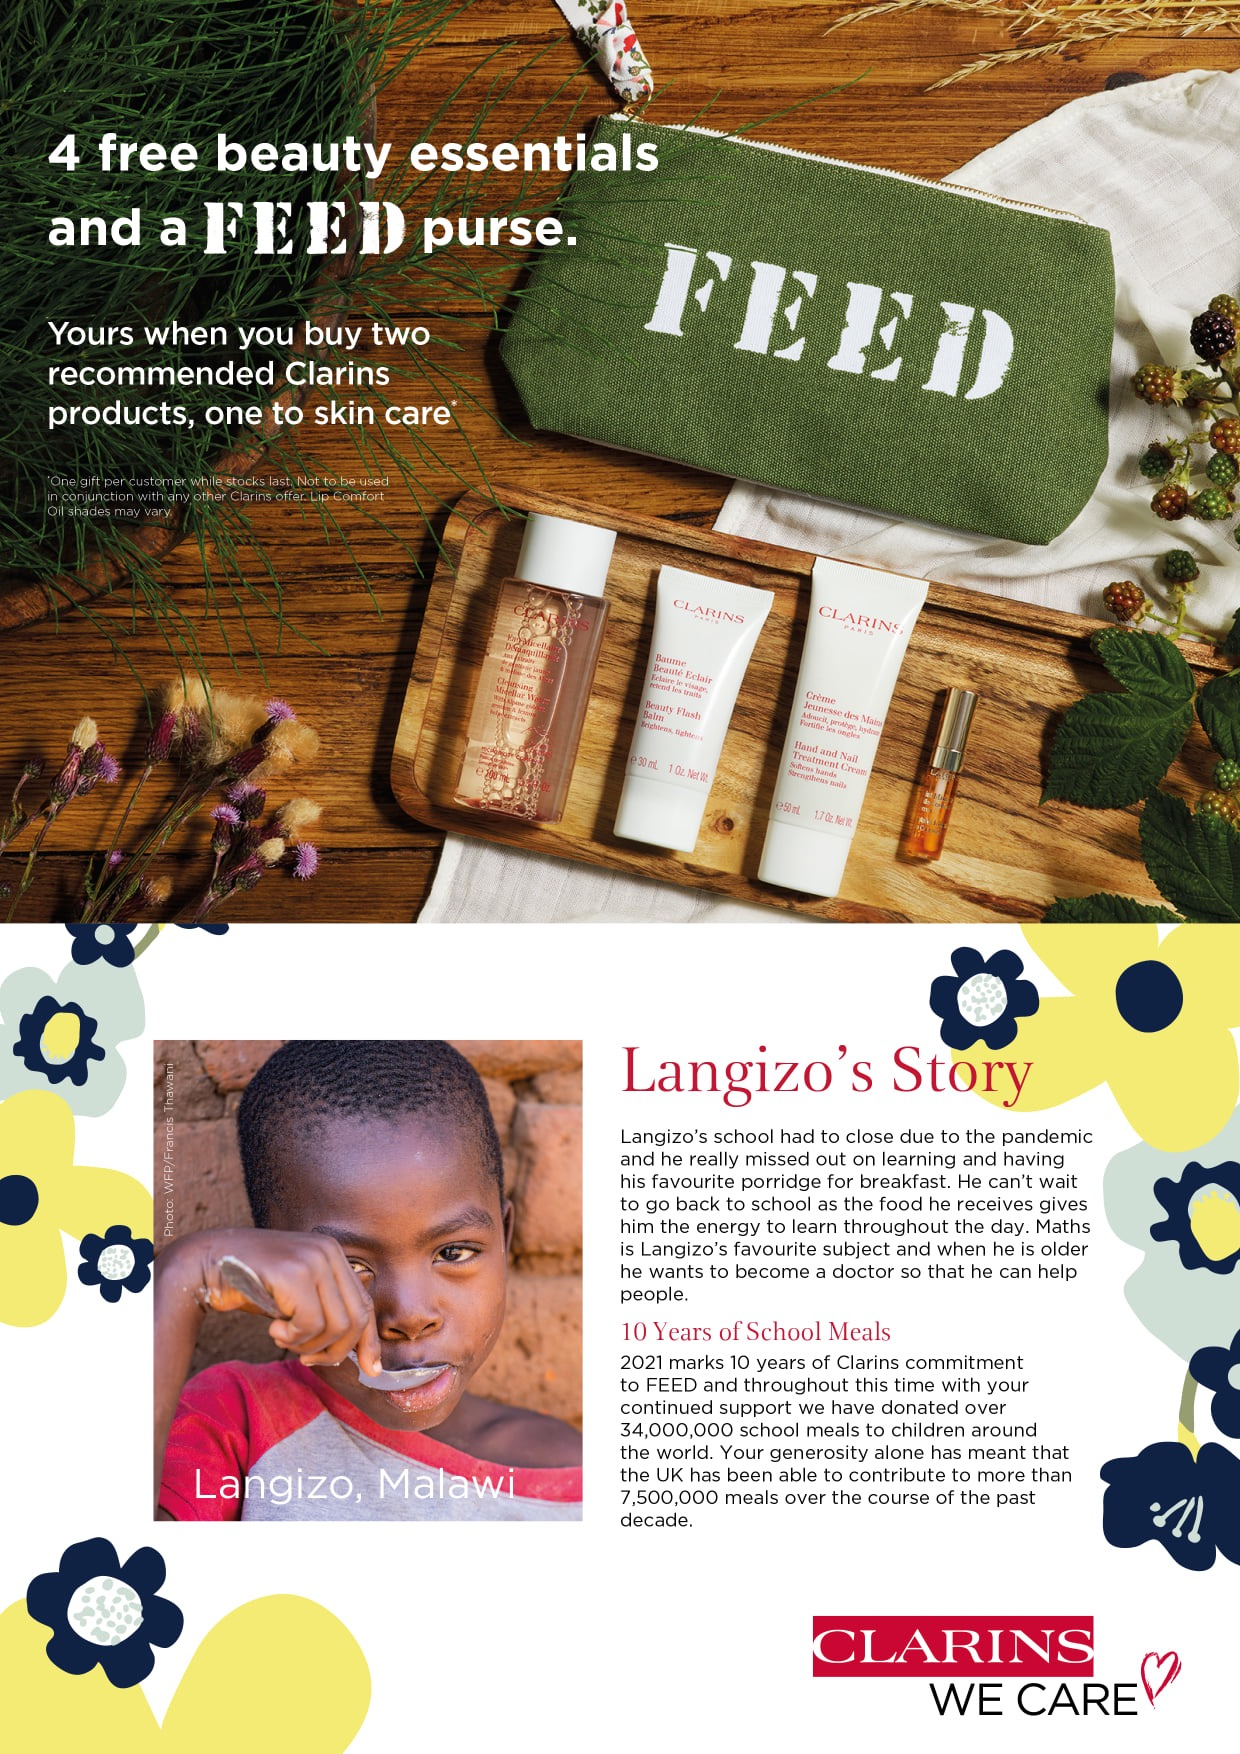 Clarins feed offer